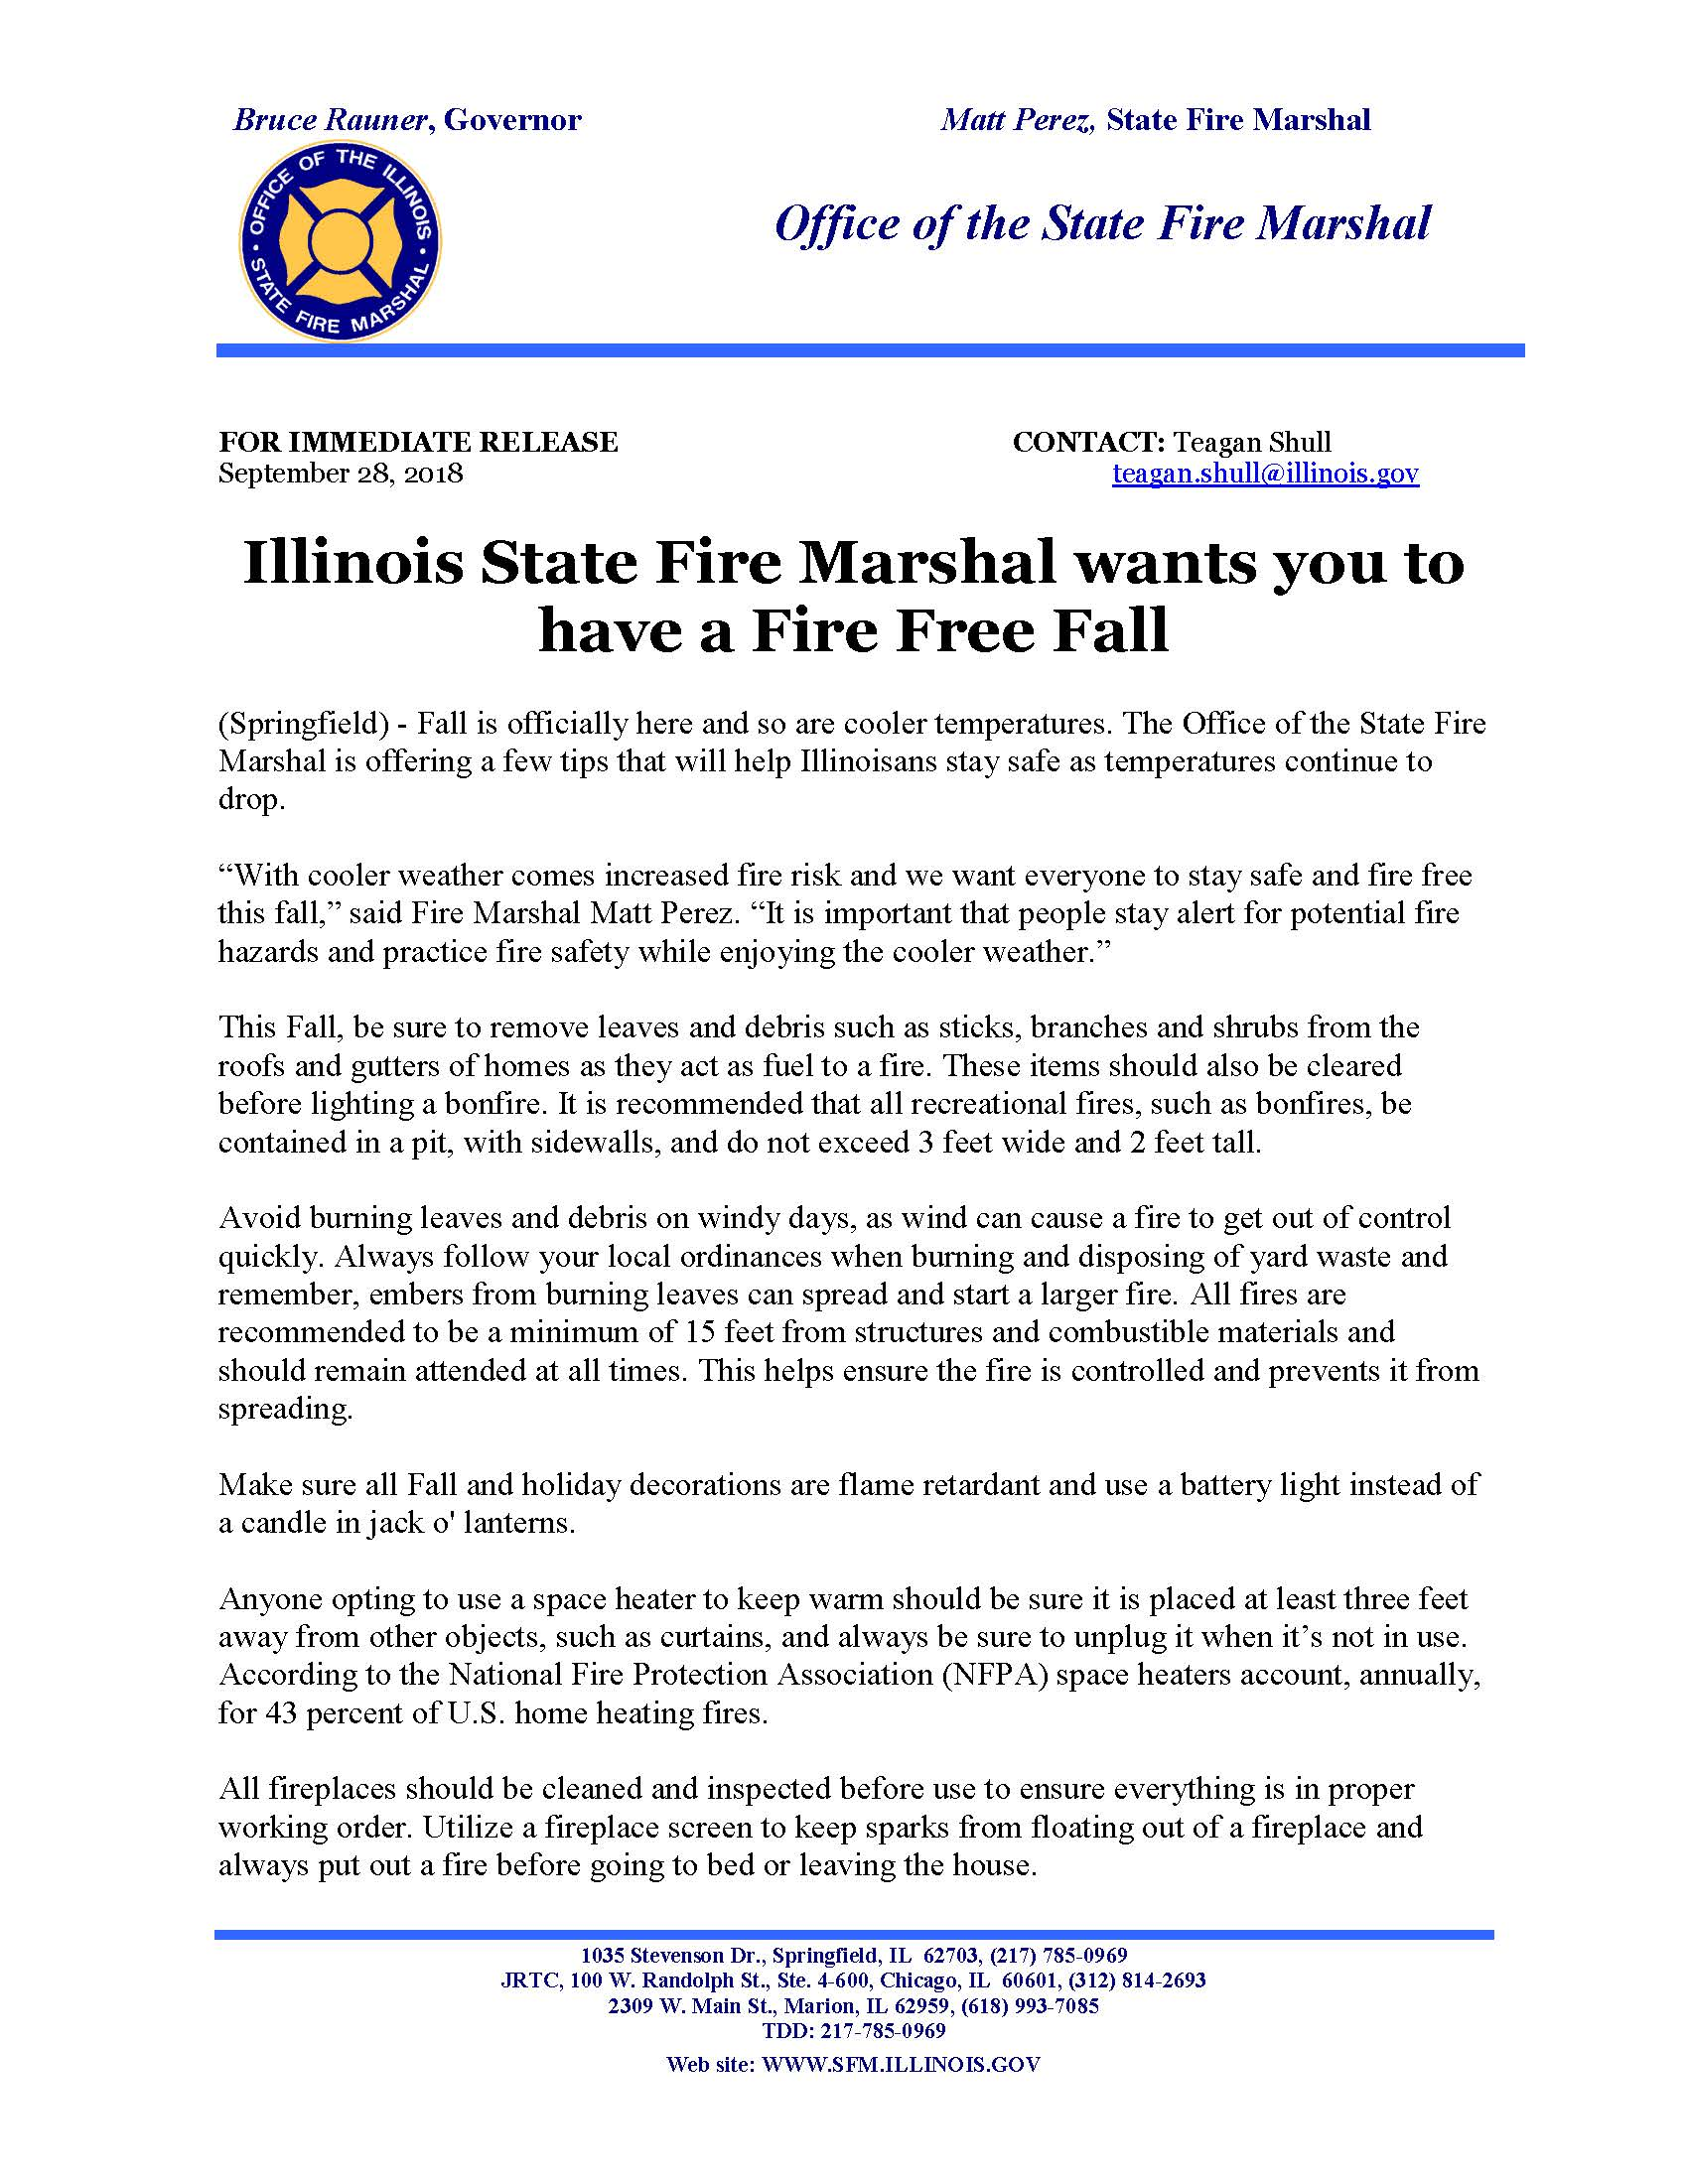 19205-Illinois_State_Fire_Marshal_wants_you_to_have_a_Fire_Free_Fall__Page_1